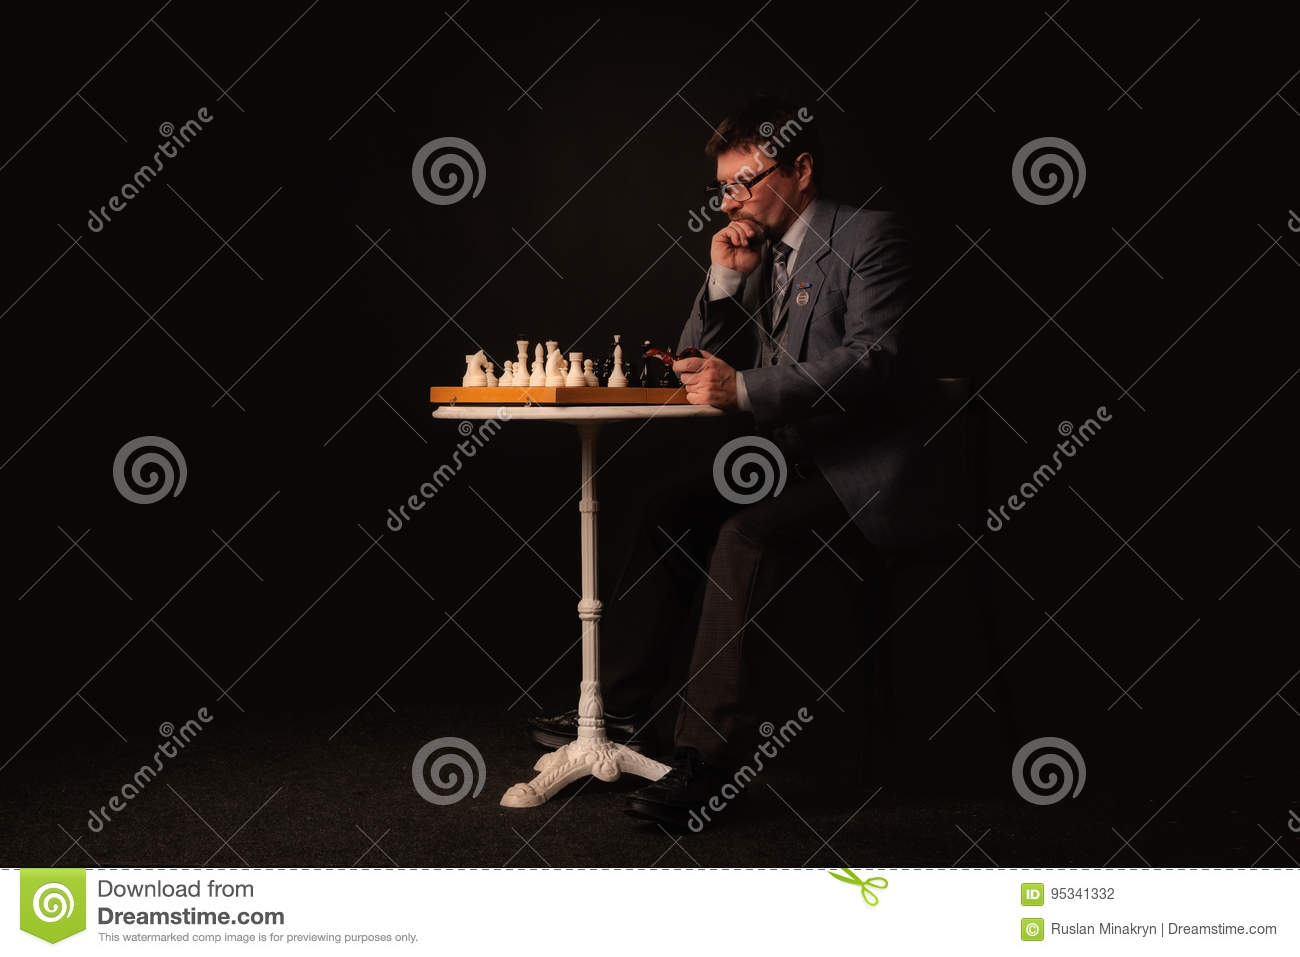 A man plays chess and smokes a pipe on a dark background